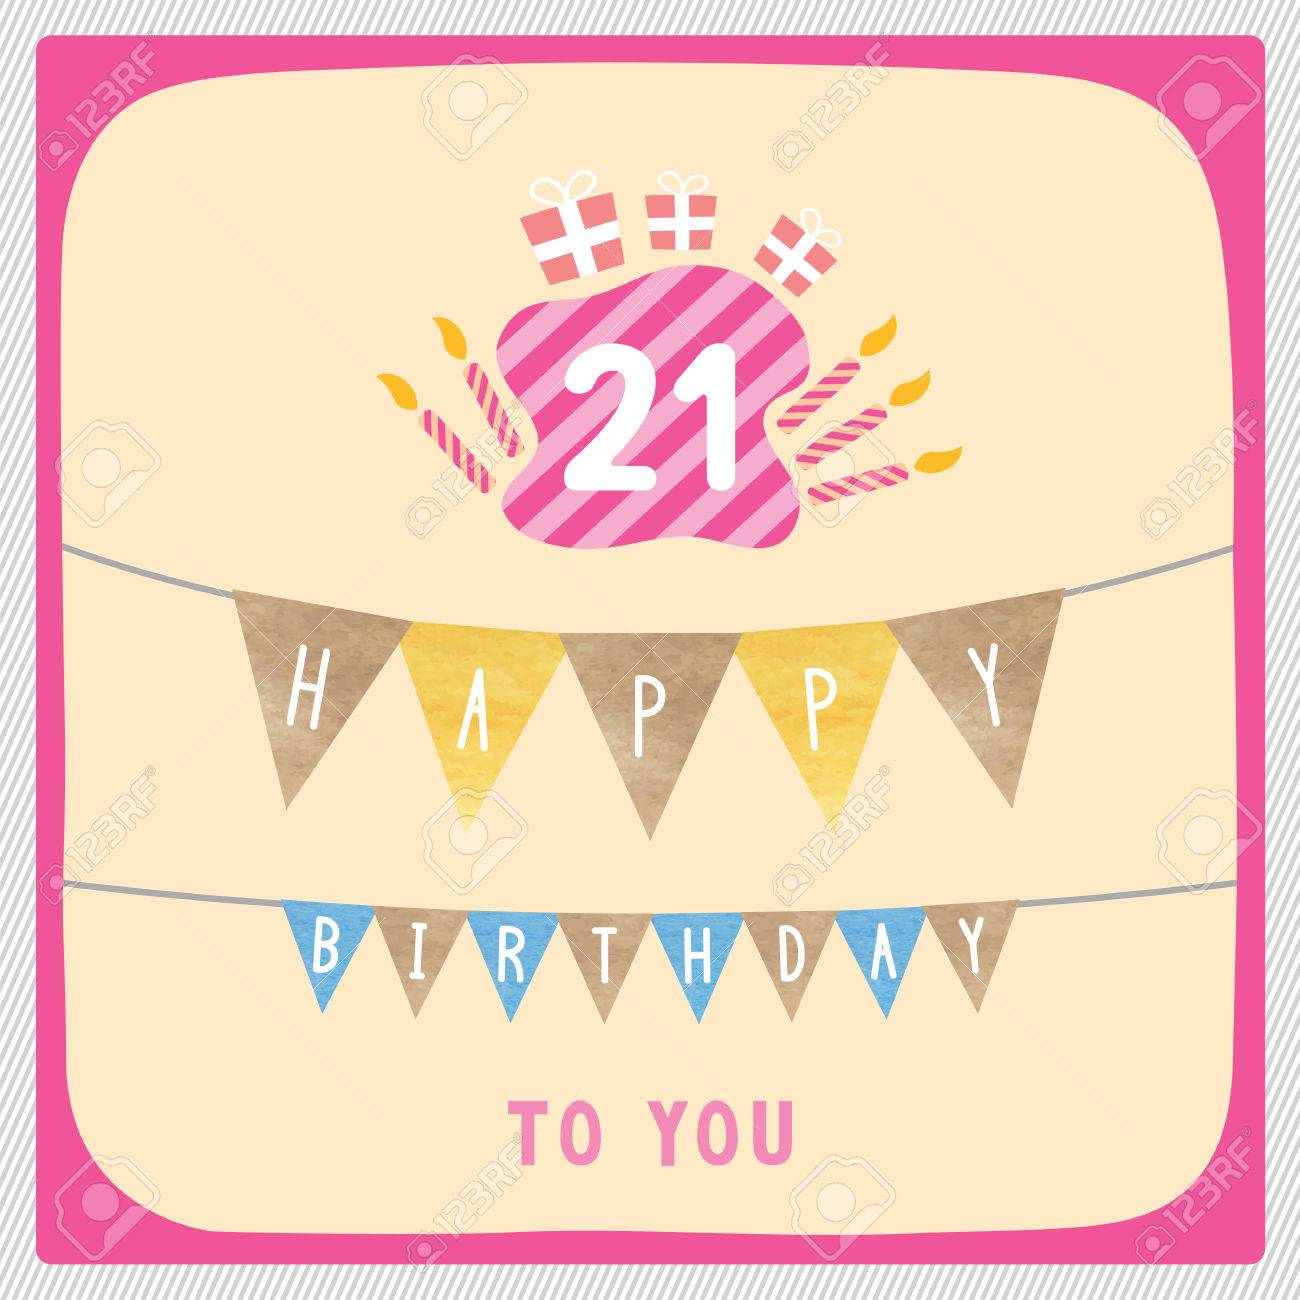 Happy 21st Birthday Anniversary Card With Gift Boxes And Candles Stock Photo